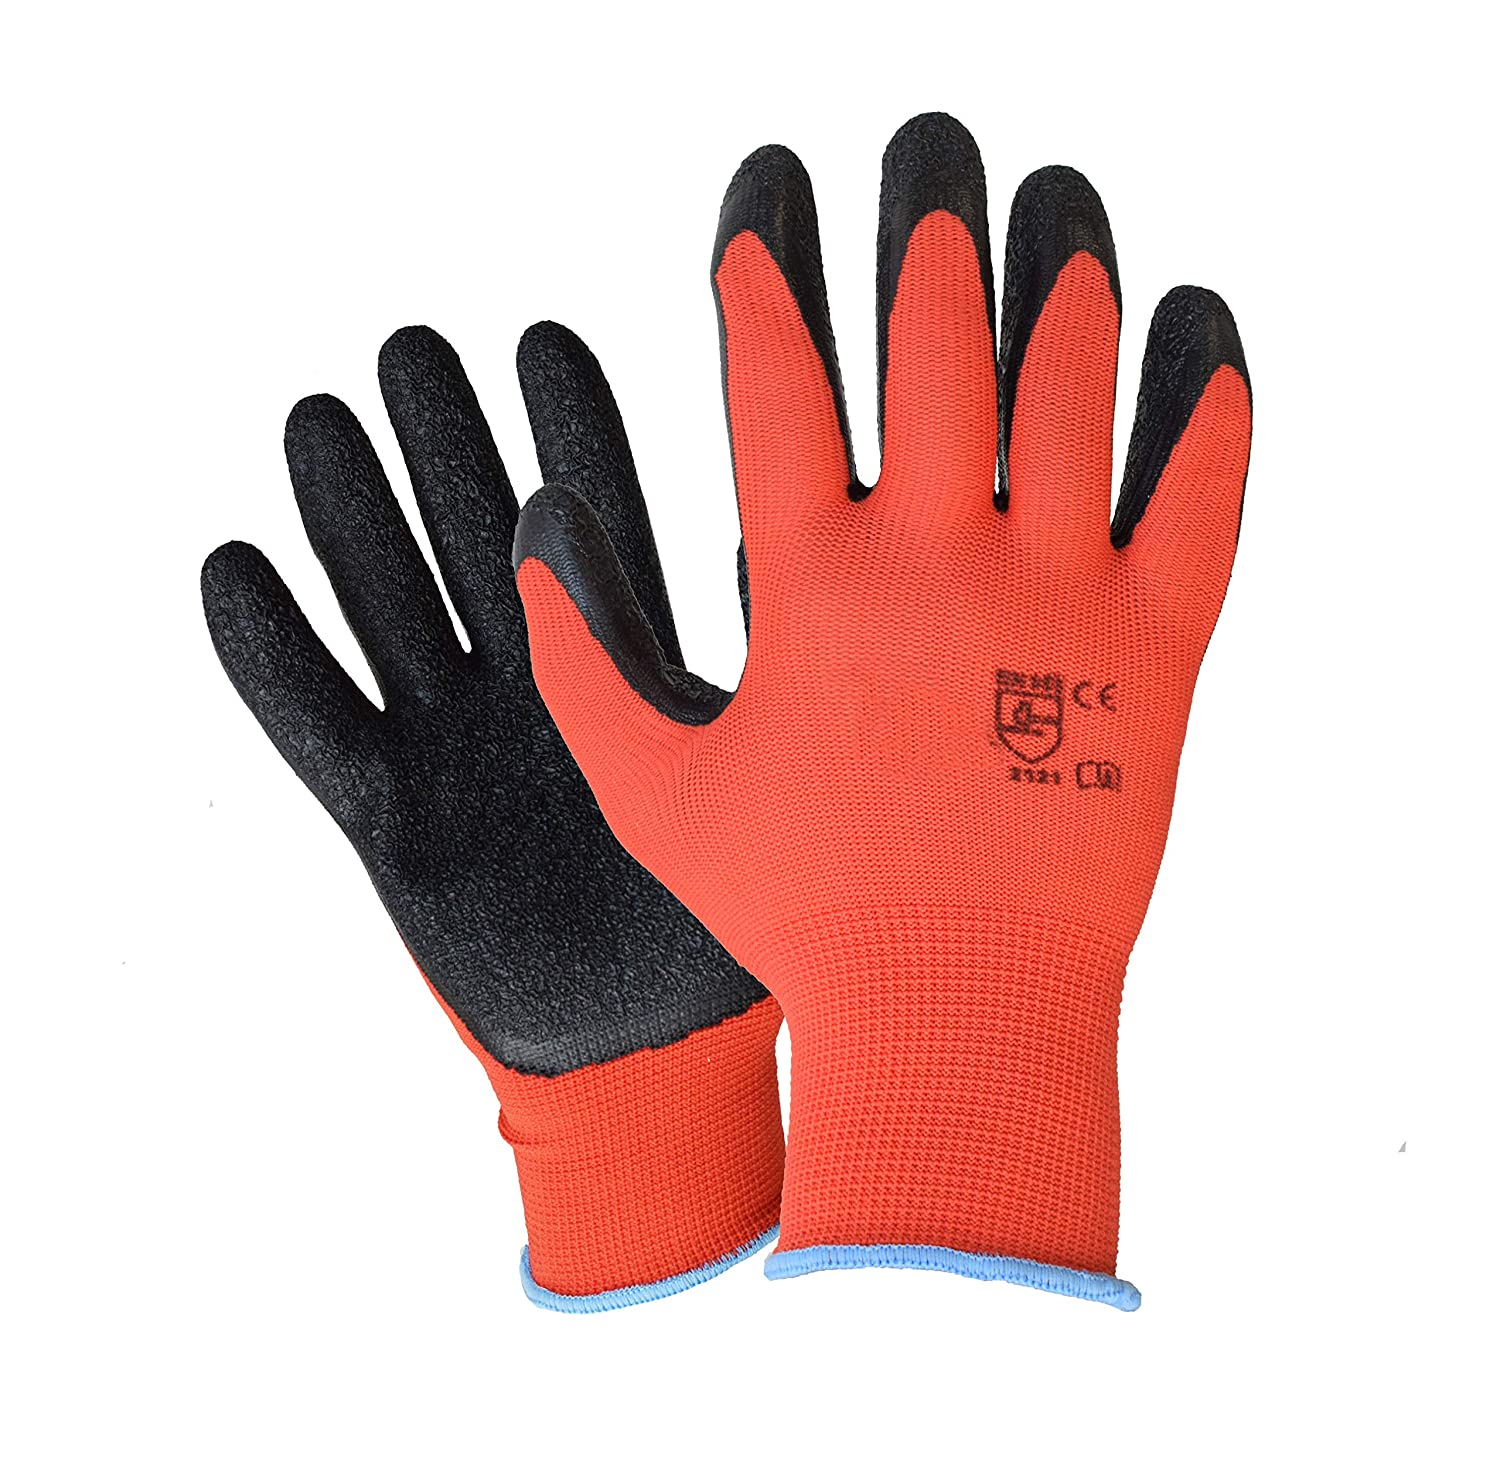 10 Pairs Size S(7) Latex coated work gloves for builders, gardeners, etc - By ASPRO (10 pairs, SMALL (size 7))